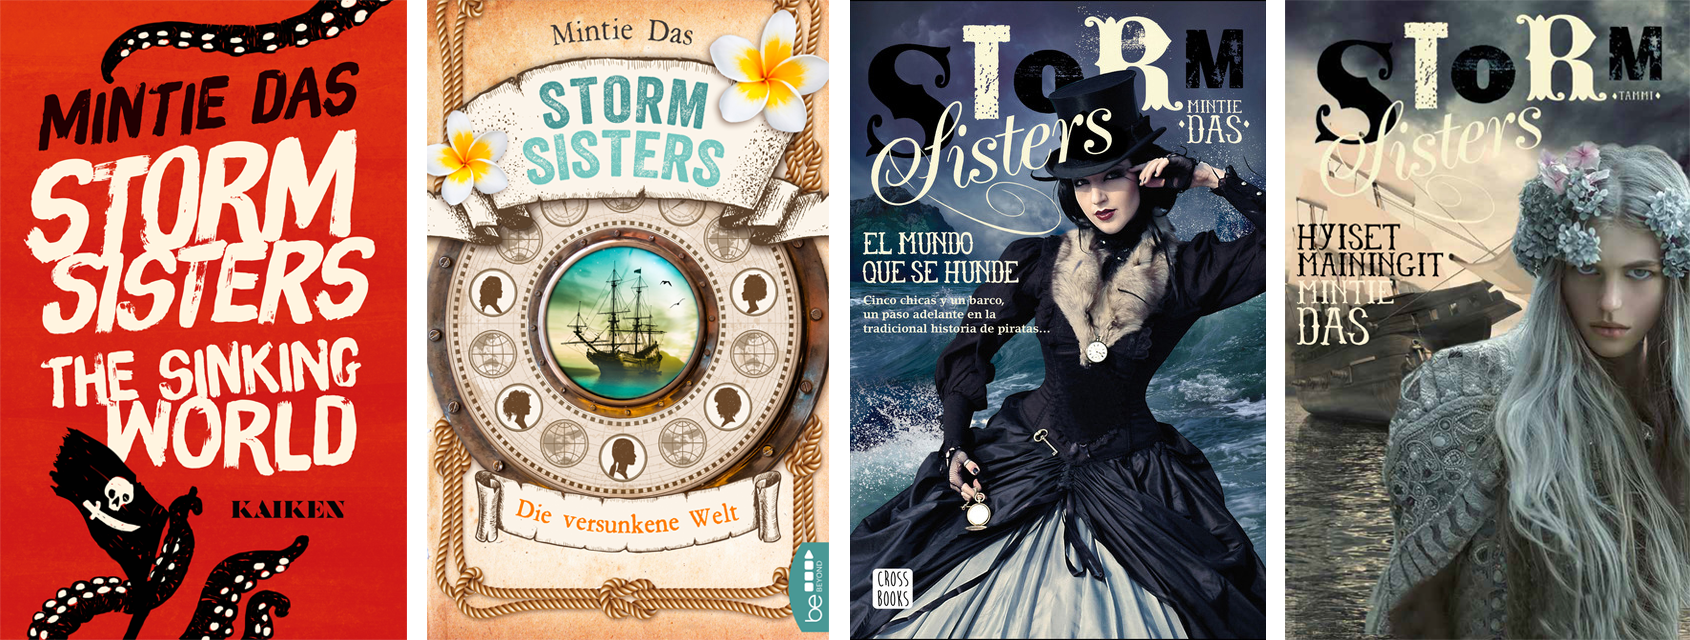 StormSisters_Books.png